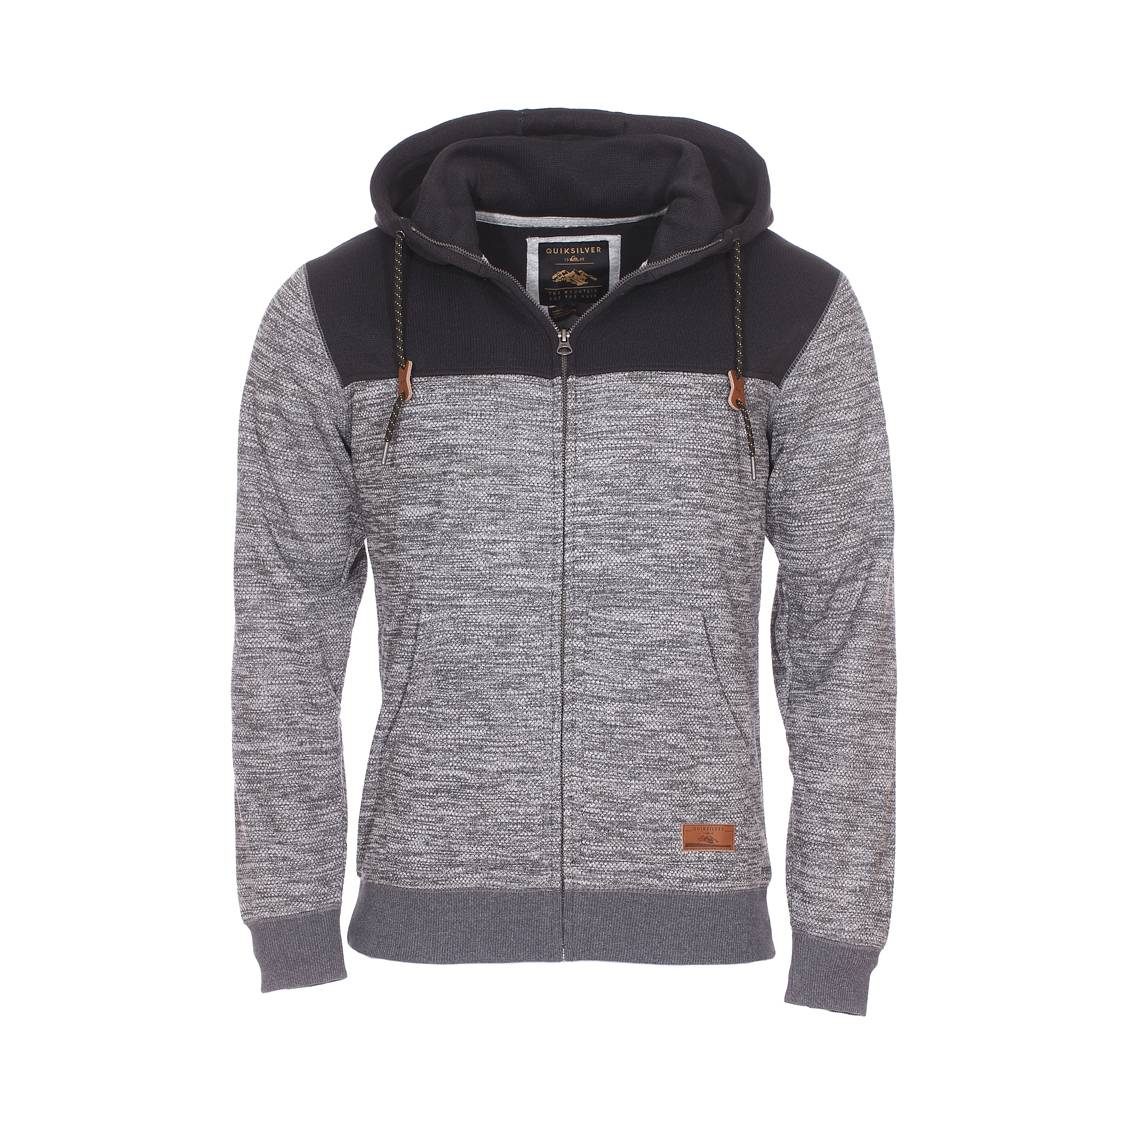 Sweat à capuche zippé  keller block gris anthracite chiné et noir